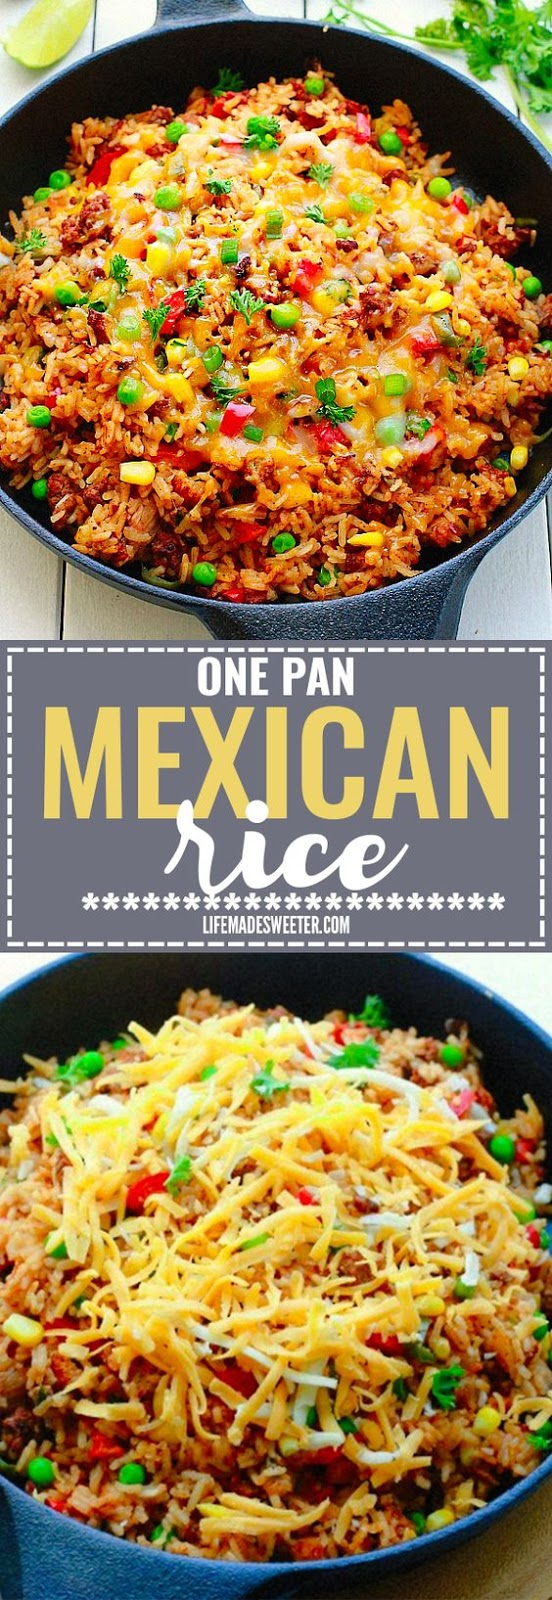 {One Pan} Mexican Rice Skillet #maincoourse #mexican #rice #skillet #onepan